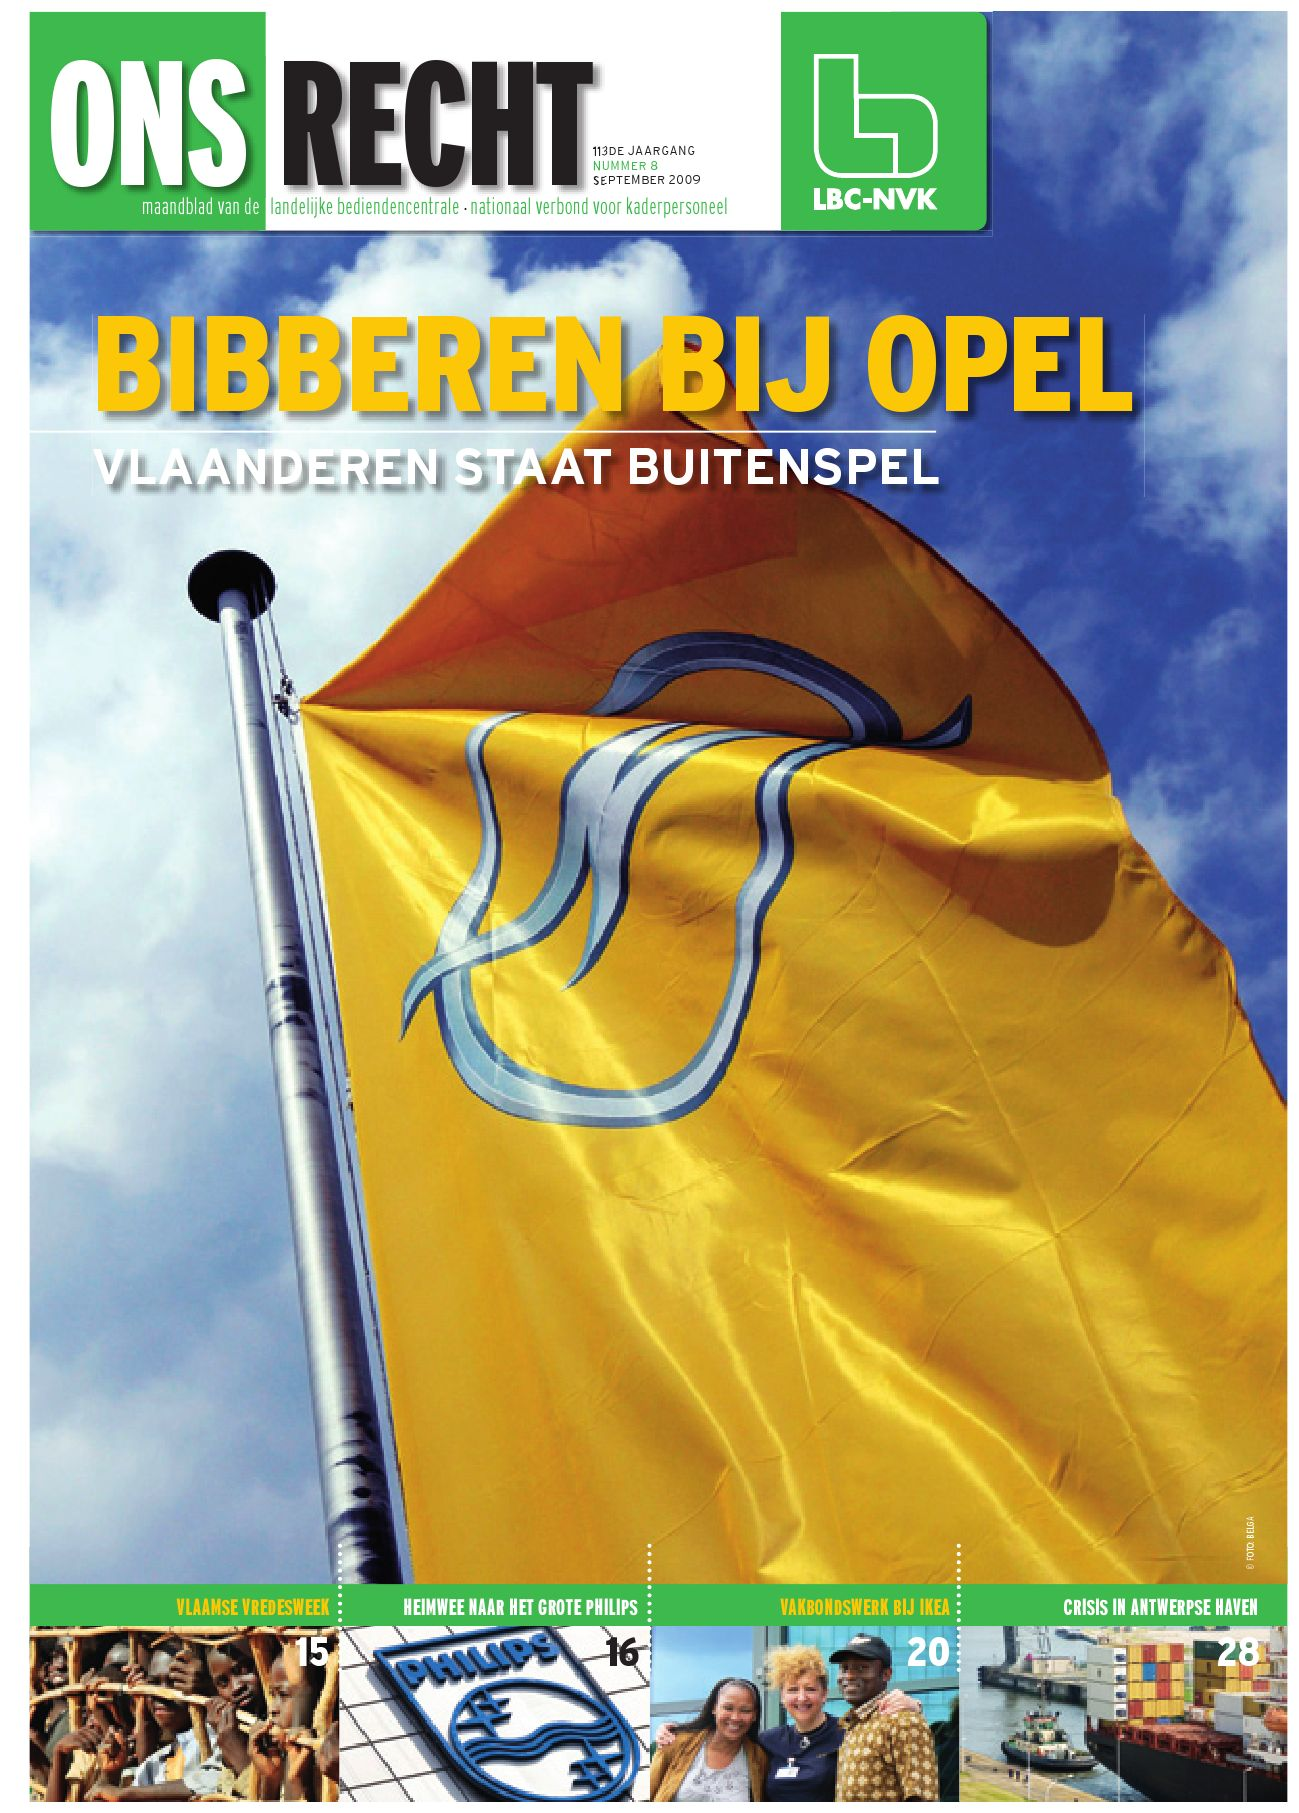 Ons Recht September 2009 By Lbc Nvk Issuu